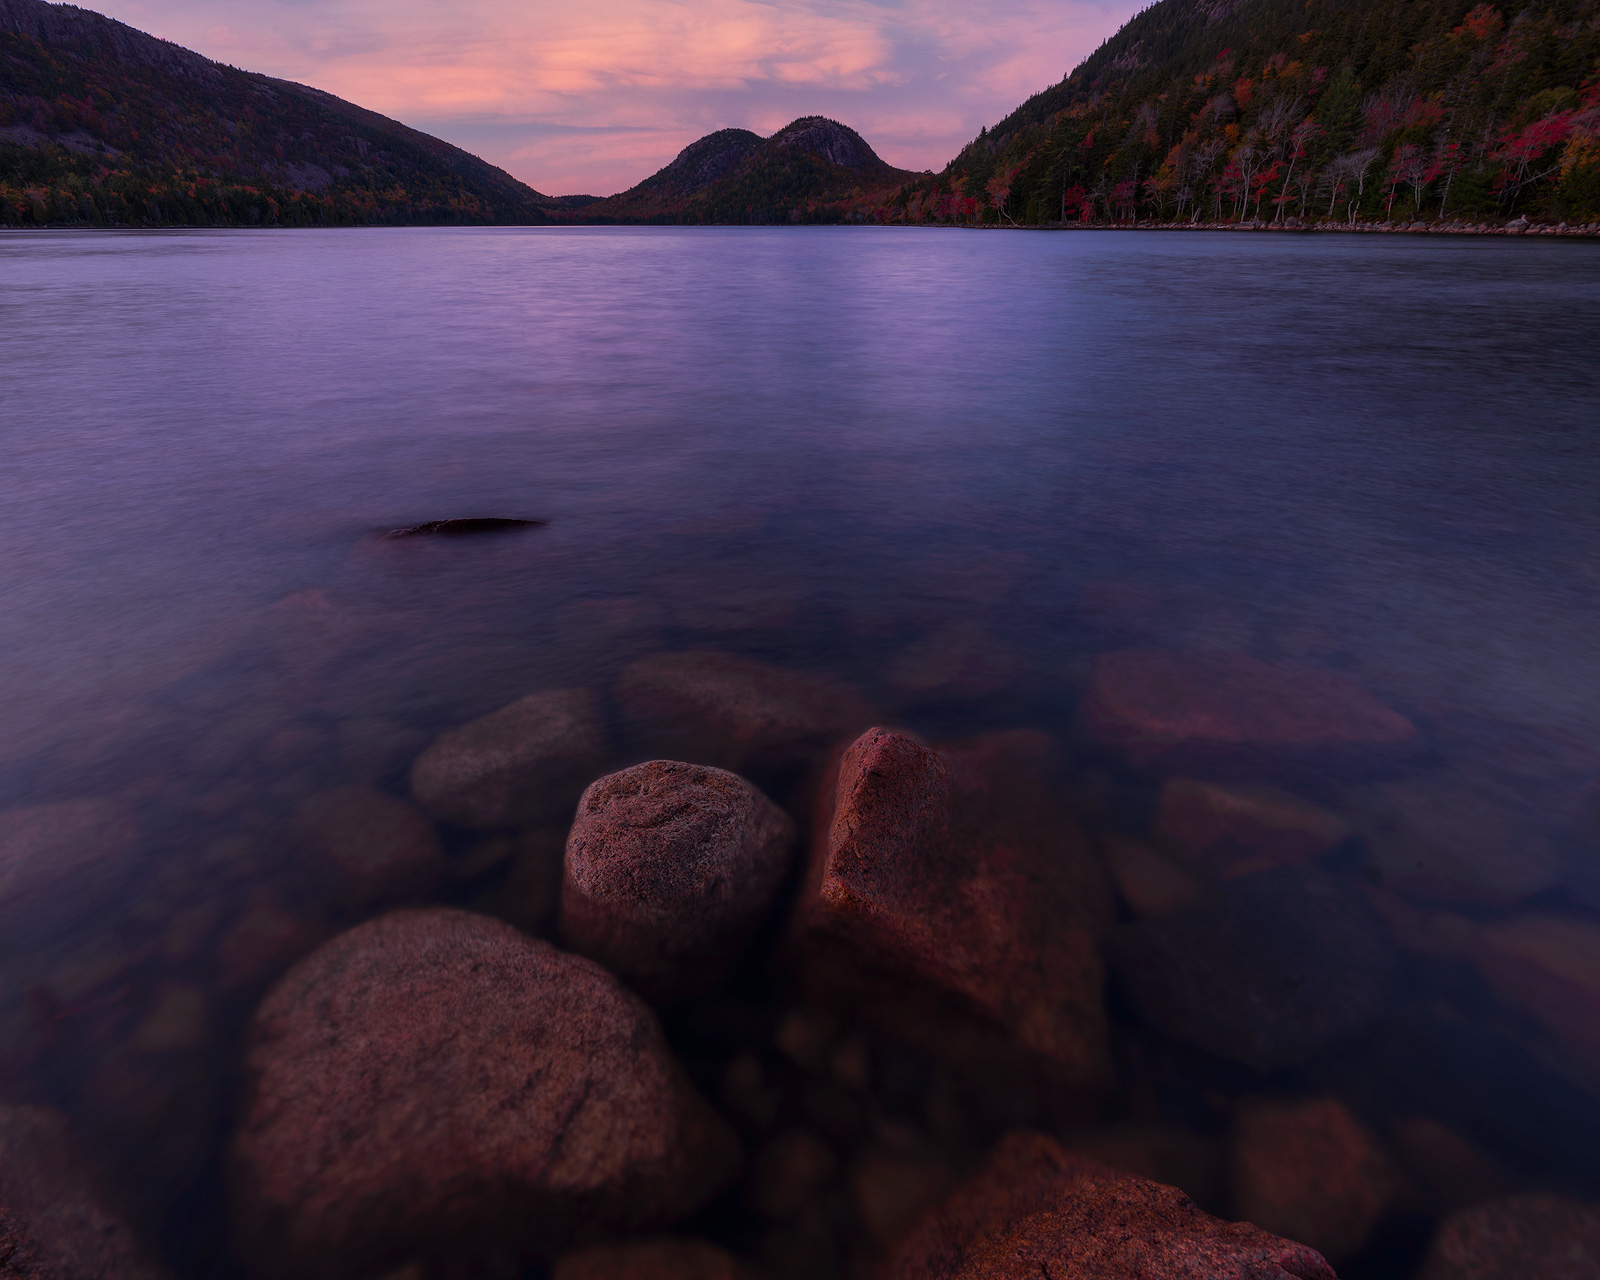 Sunset over Jordan Pond showing the Bubbles, two rounded mountains, in Acadia National Park, Maine.